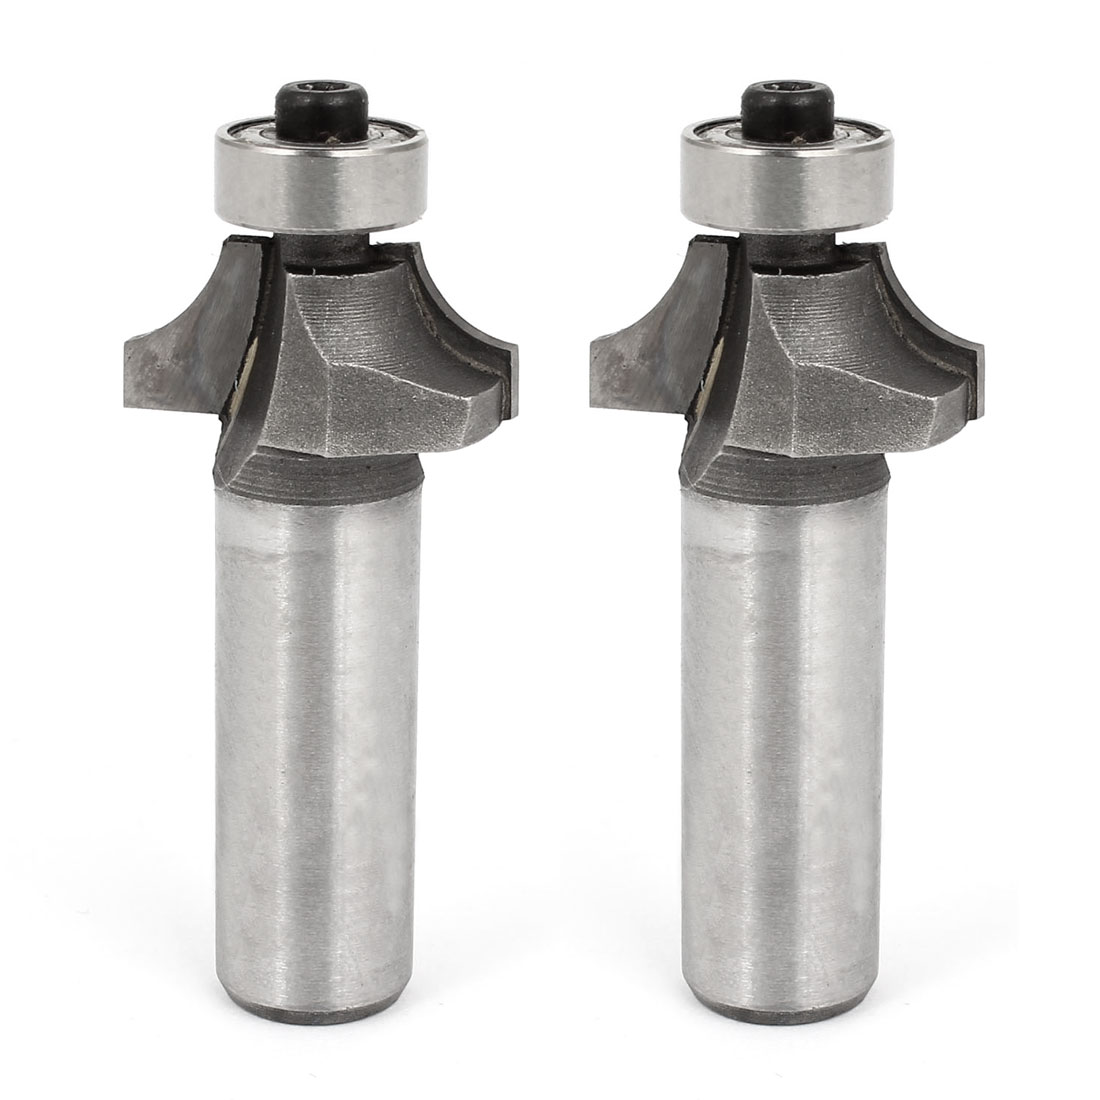 "1/2"" x 1/2"" Silver Tone End Bearing Corner Rounding Over Router Bit 2 Pcs"